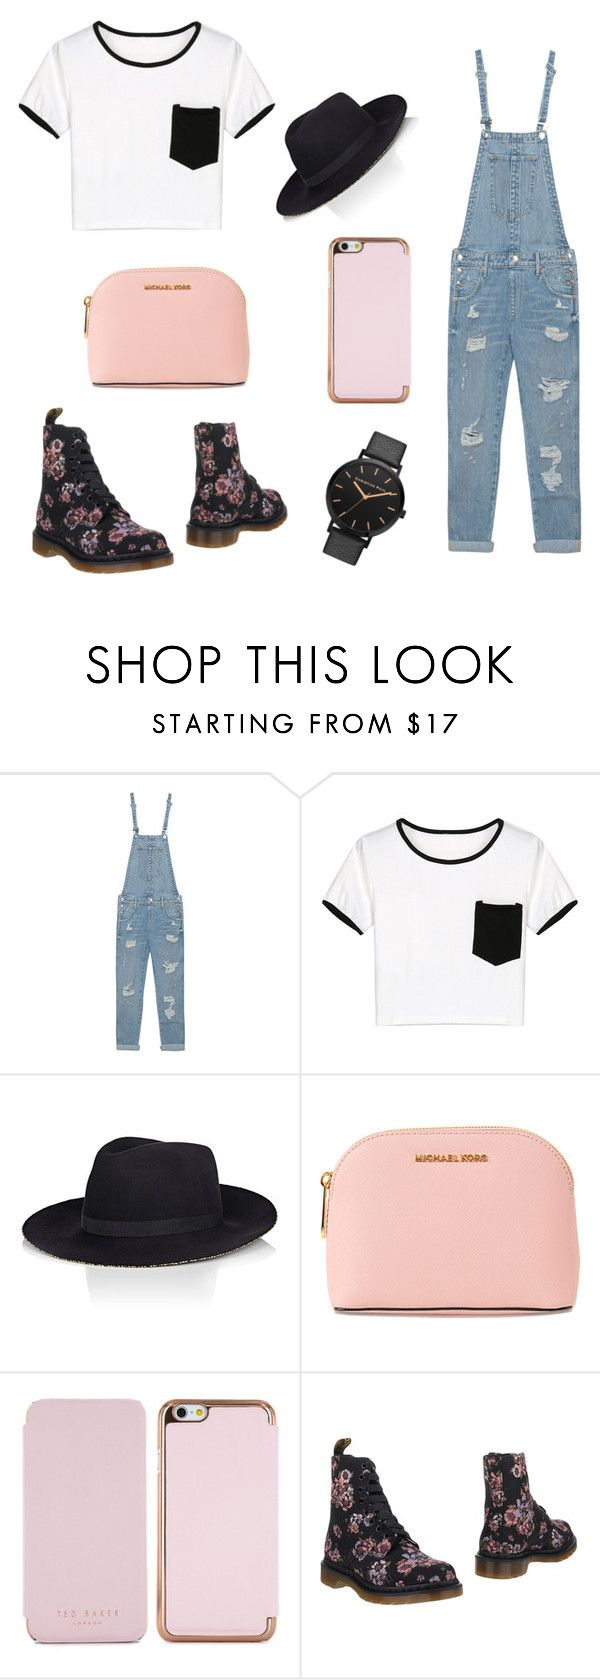 """No Faith in Brooklyn"" by nineties-wallflower ❤ liked on Polyvore featuring True Religion, WithChic, Eugenia Kim, MICHAEL Michael Kors, Ted Baker and Dr. Martens"